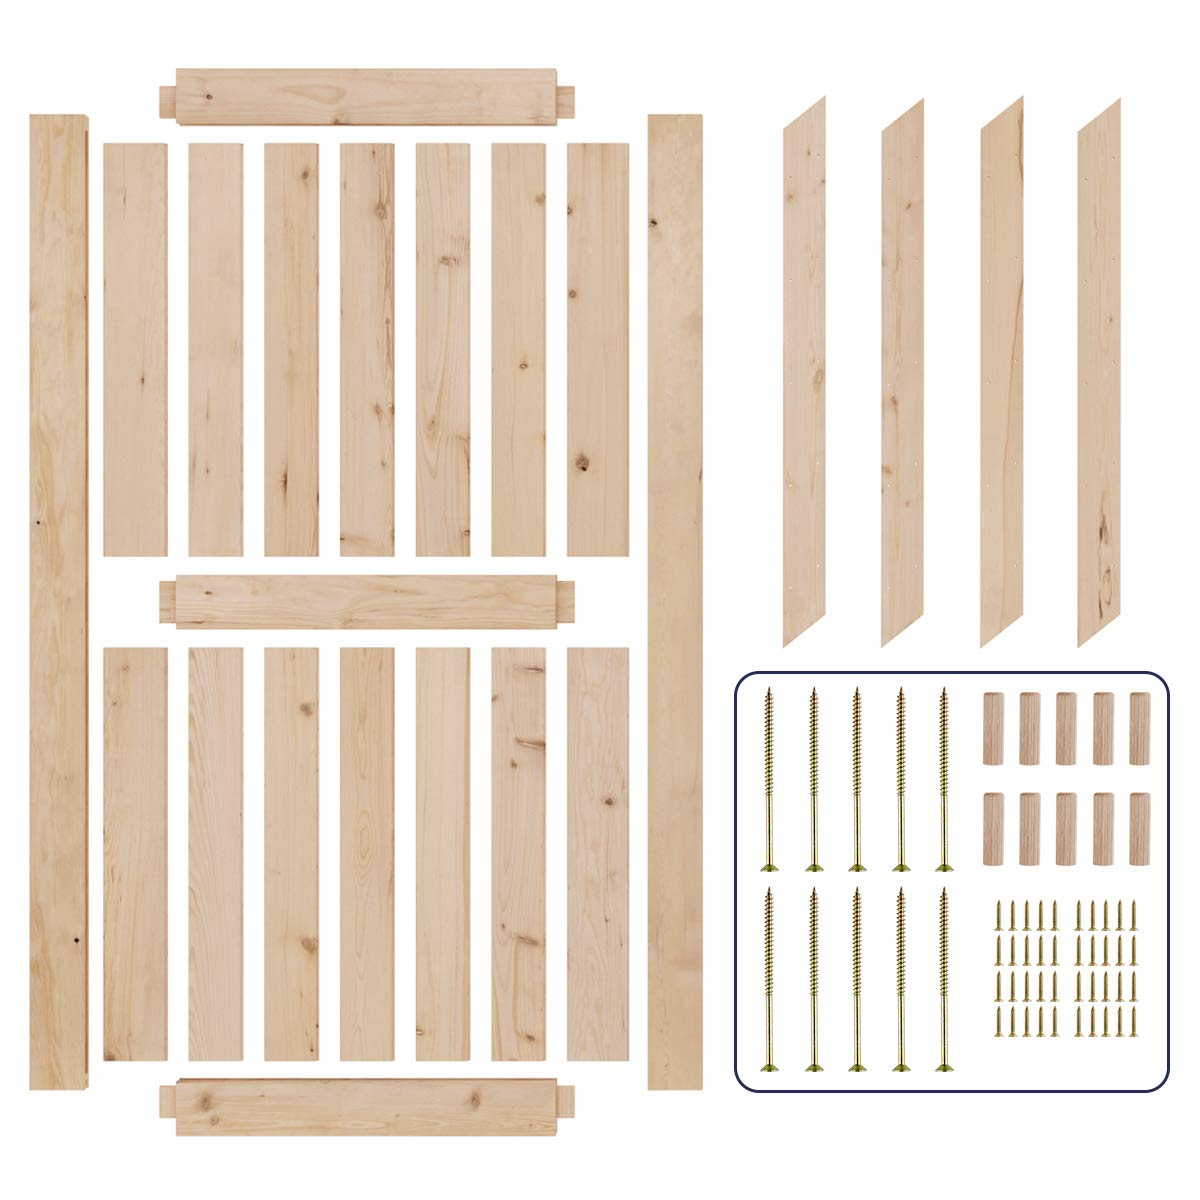 SMARTSTANDARD 42in x 84in Sliding Barn Door with 8ft Barn Door Hardware Kit /& Handle K-Frame DIY Unfinished Solid Cypress Wood Panelled Slab Pre-Drilled Ready to Assemble